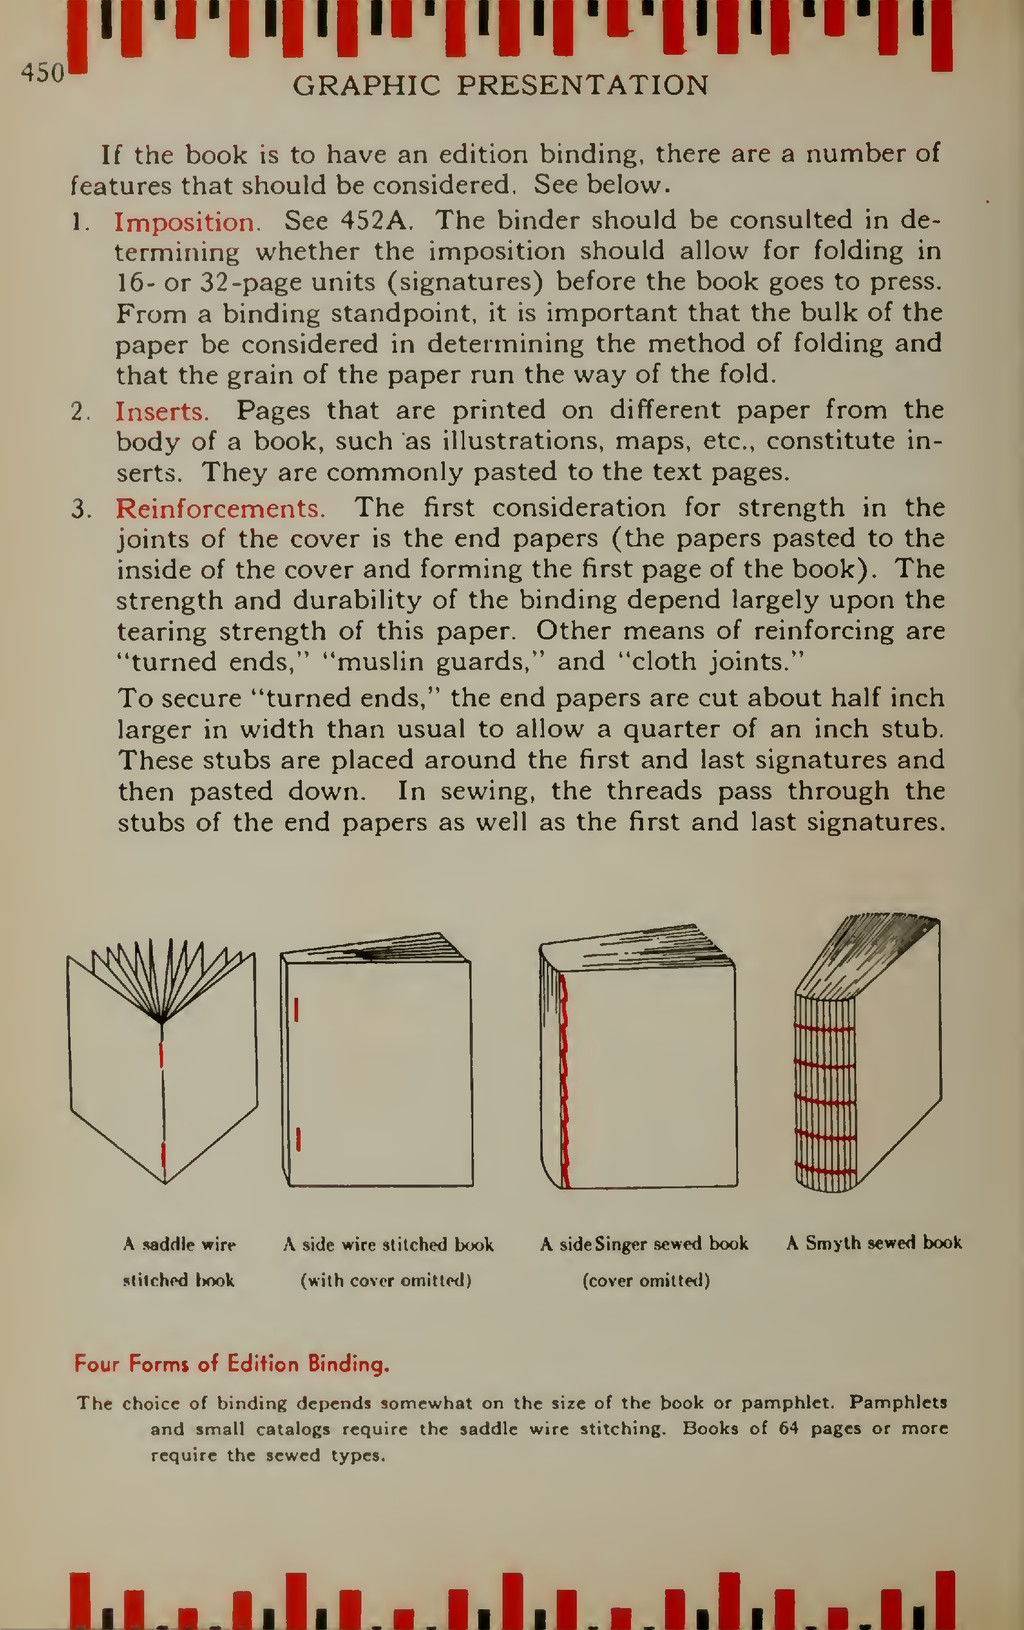 GRAPHIC PRESENTATION If the book is to have an ...